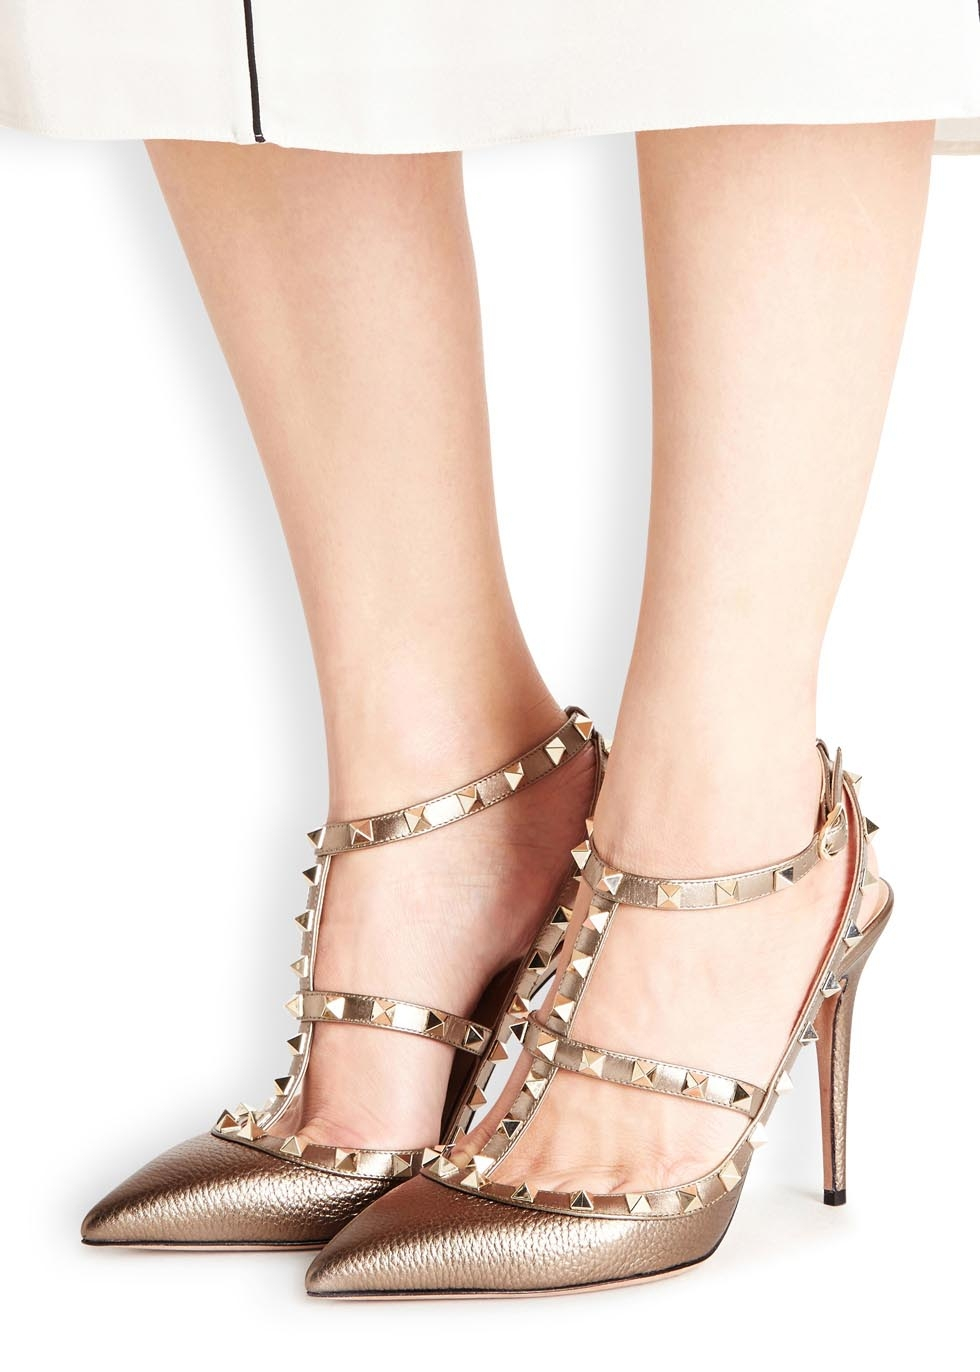 cb31227c359 Valentino Rockstud 100 Gold Leather Pumps in Metallic - Lyst